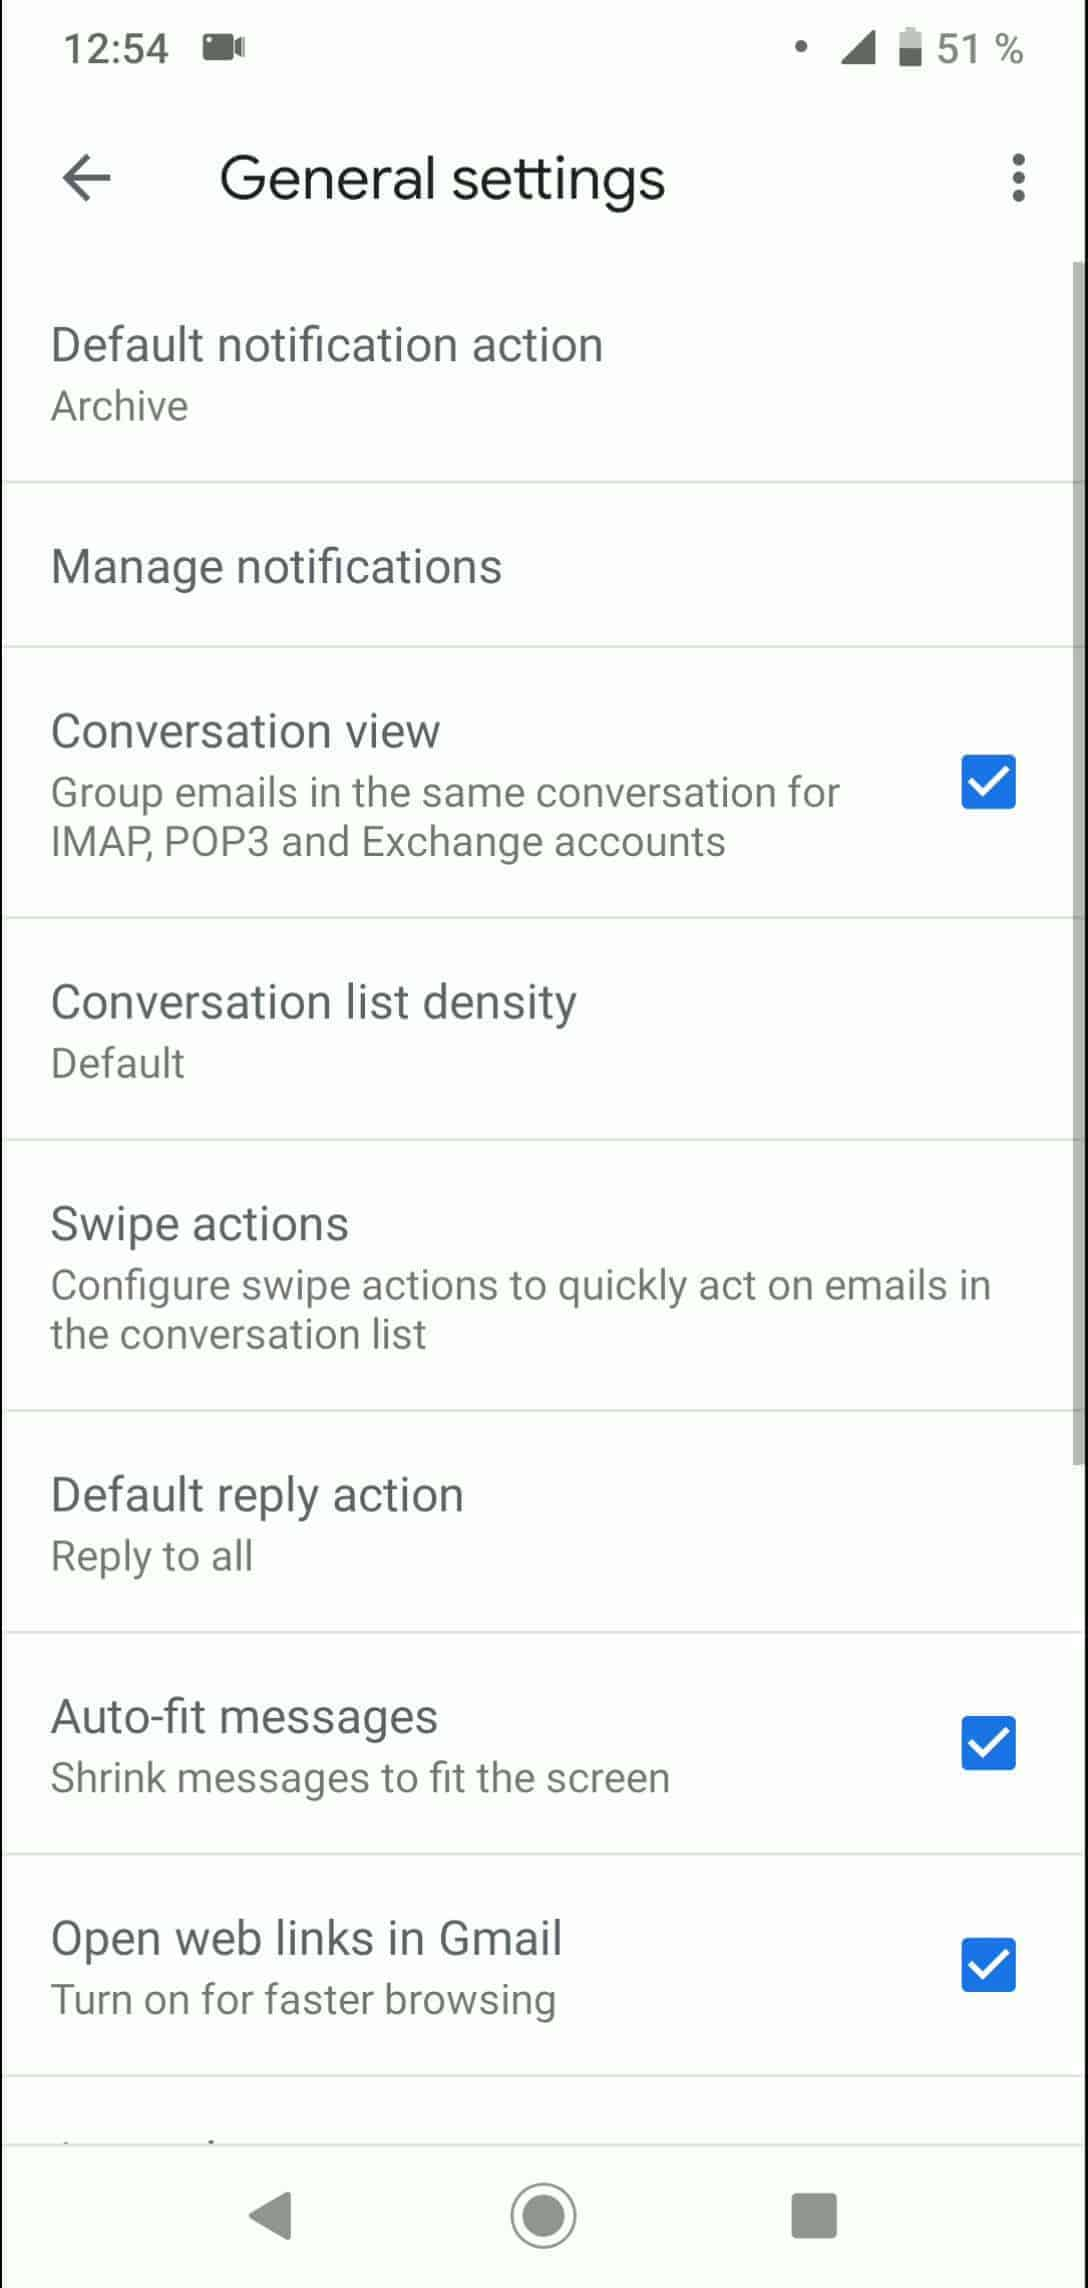 Step 5: Tap on Default reply action